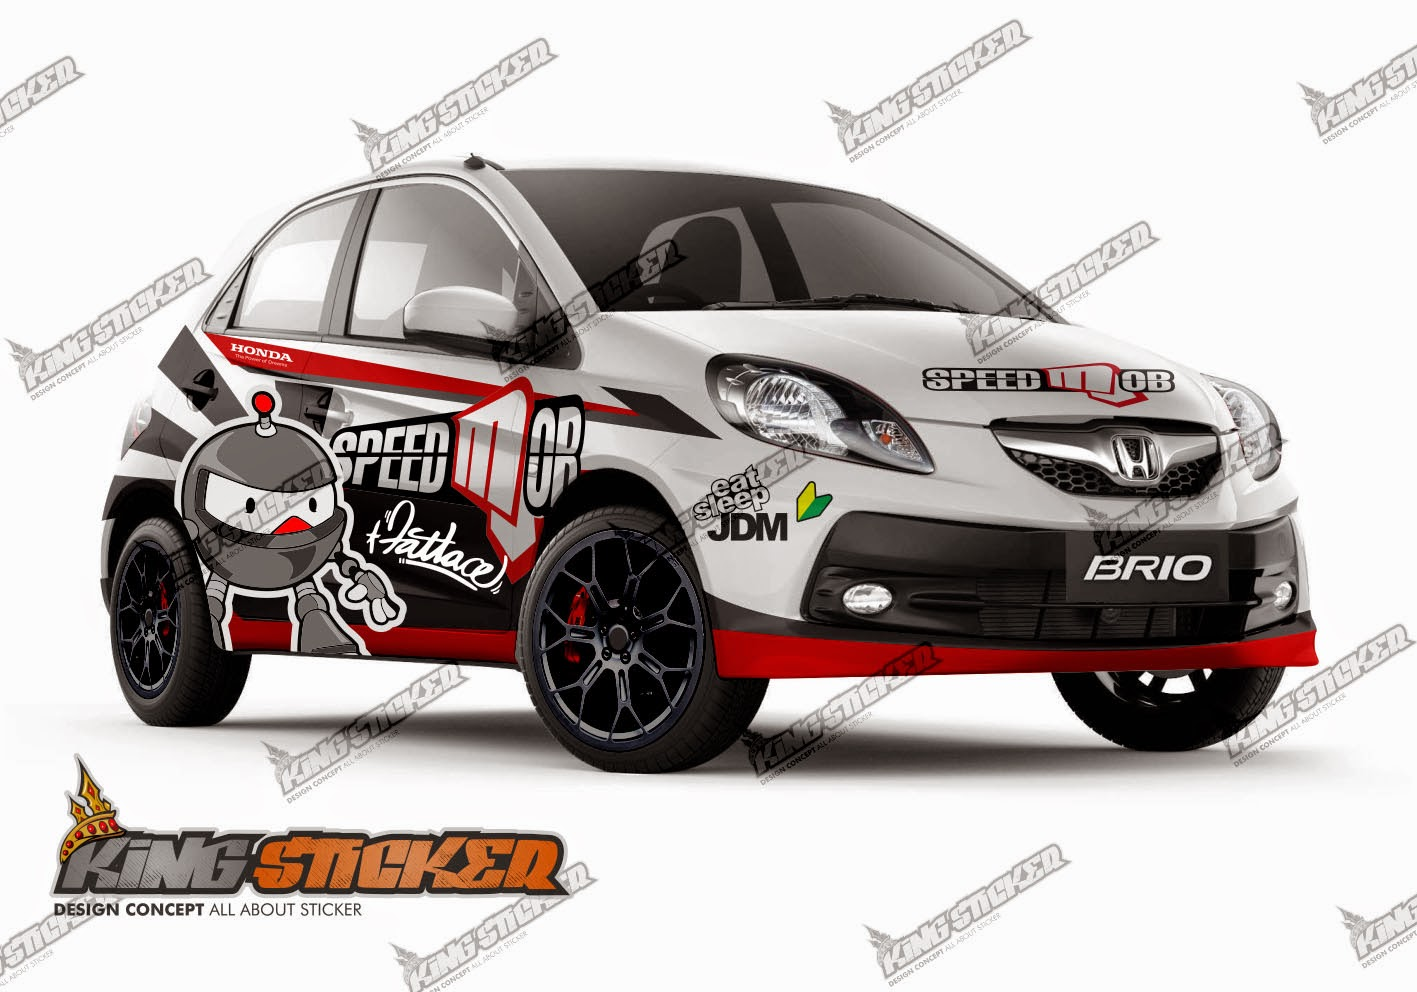 brio satya with Cutting Sticker Honda Brio on Honda brio satya indonesia  010 together with Cutting Sticker Honda Brio moreover Harga Mobil Bekas Honda further Iims 2016 Honda Brio Facelift further Al Haj And Faw Motors Launches Sirius S80 In Pakistan.